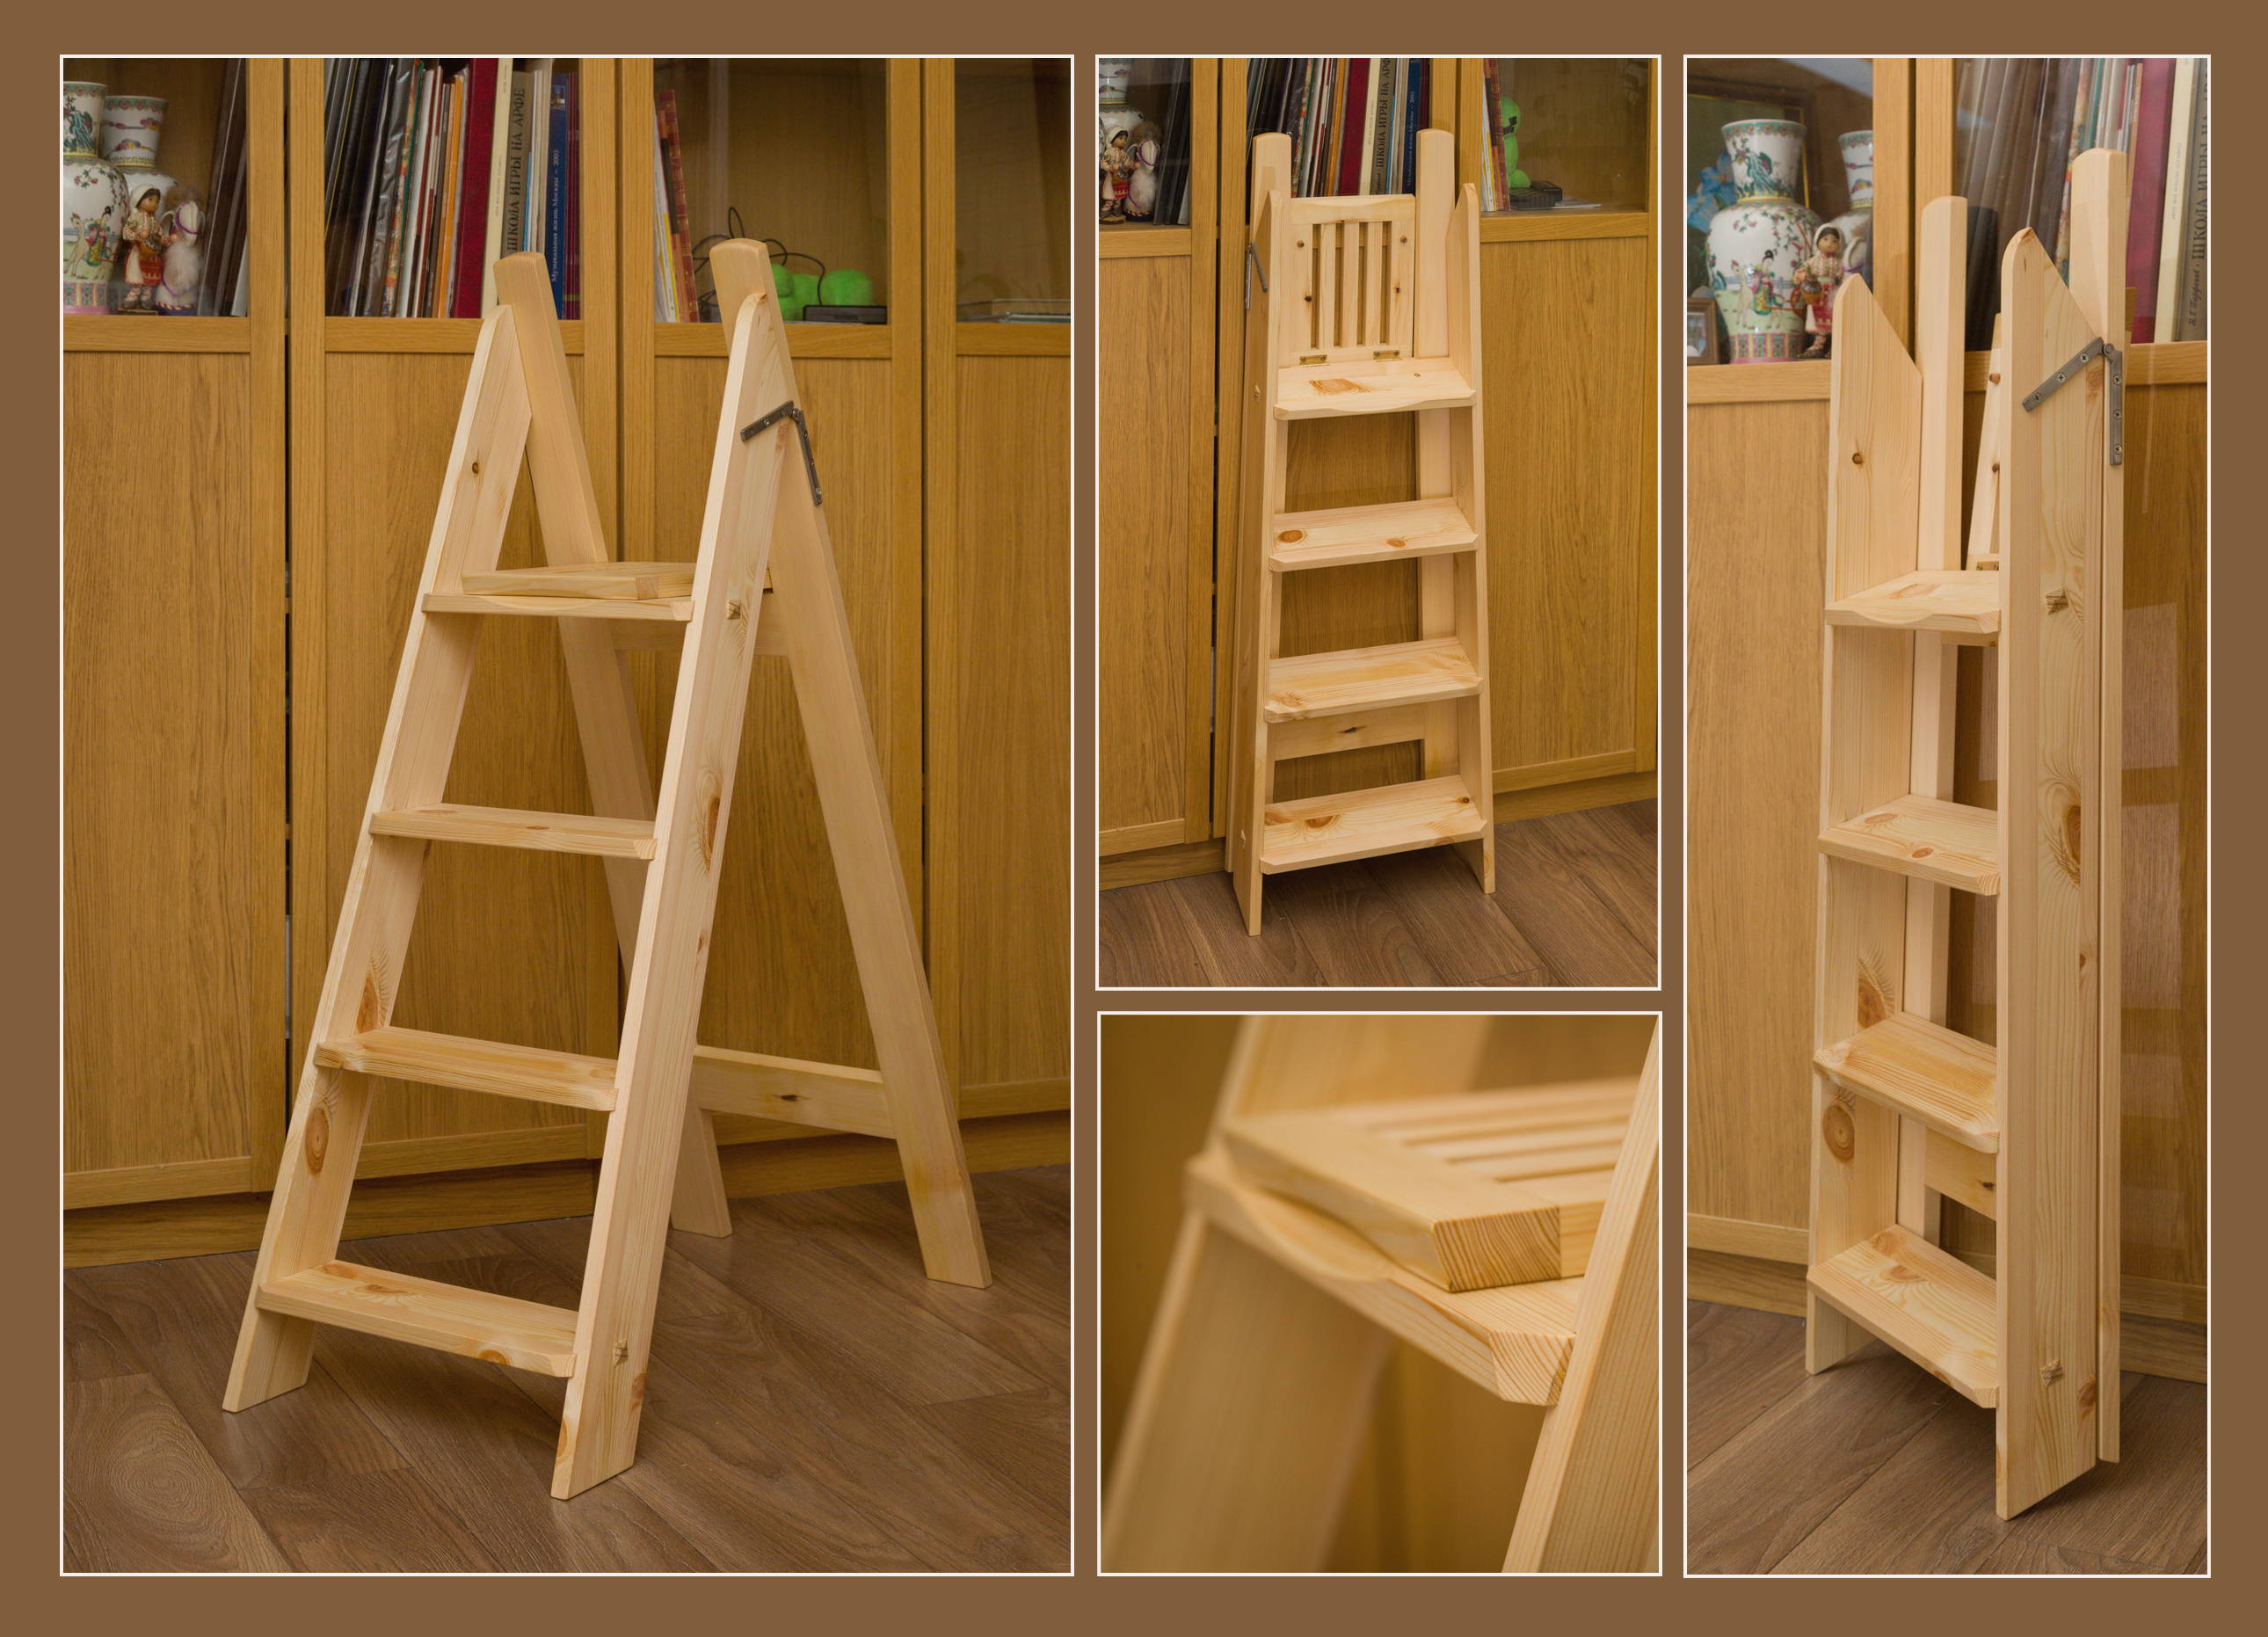 Stepladder by Misha